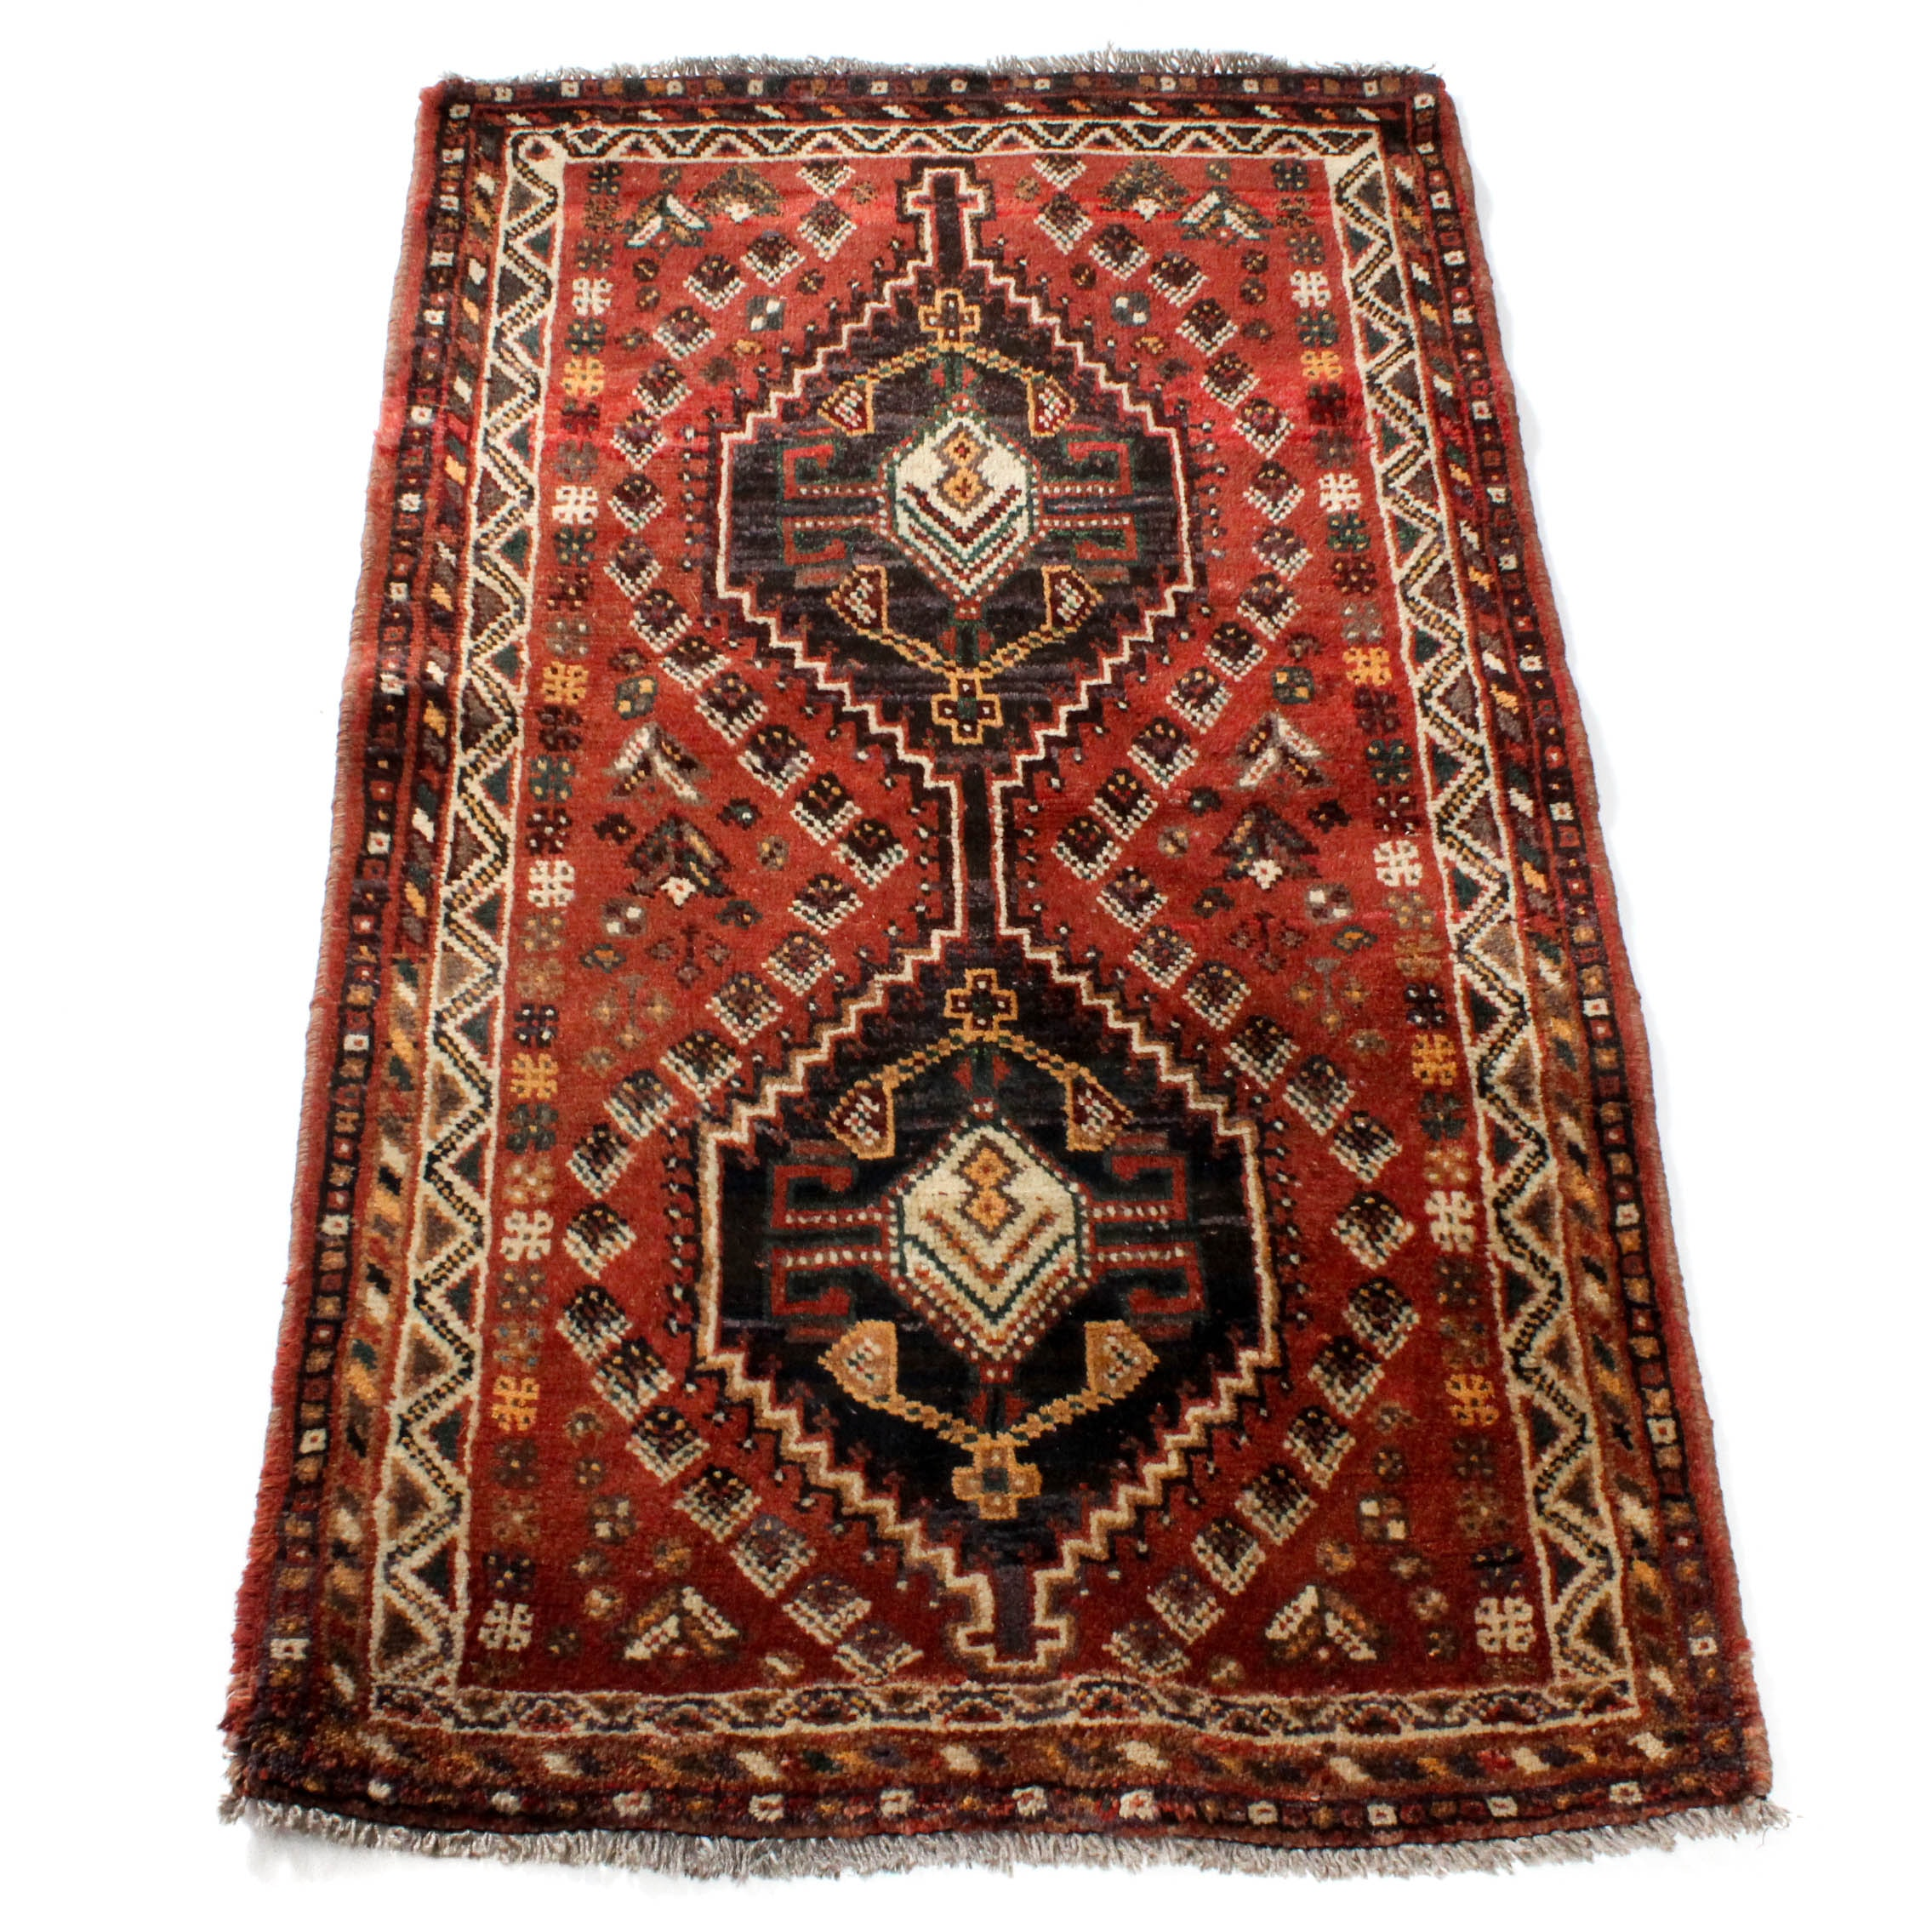 Vintage Hand-Knotted Northwest Persian Accent Rug